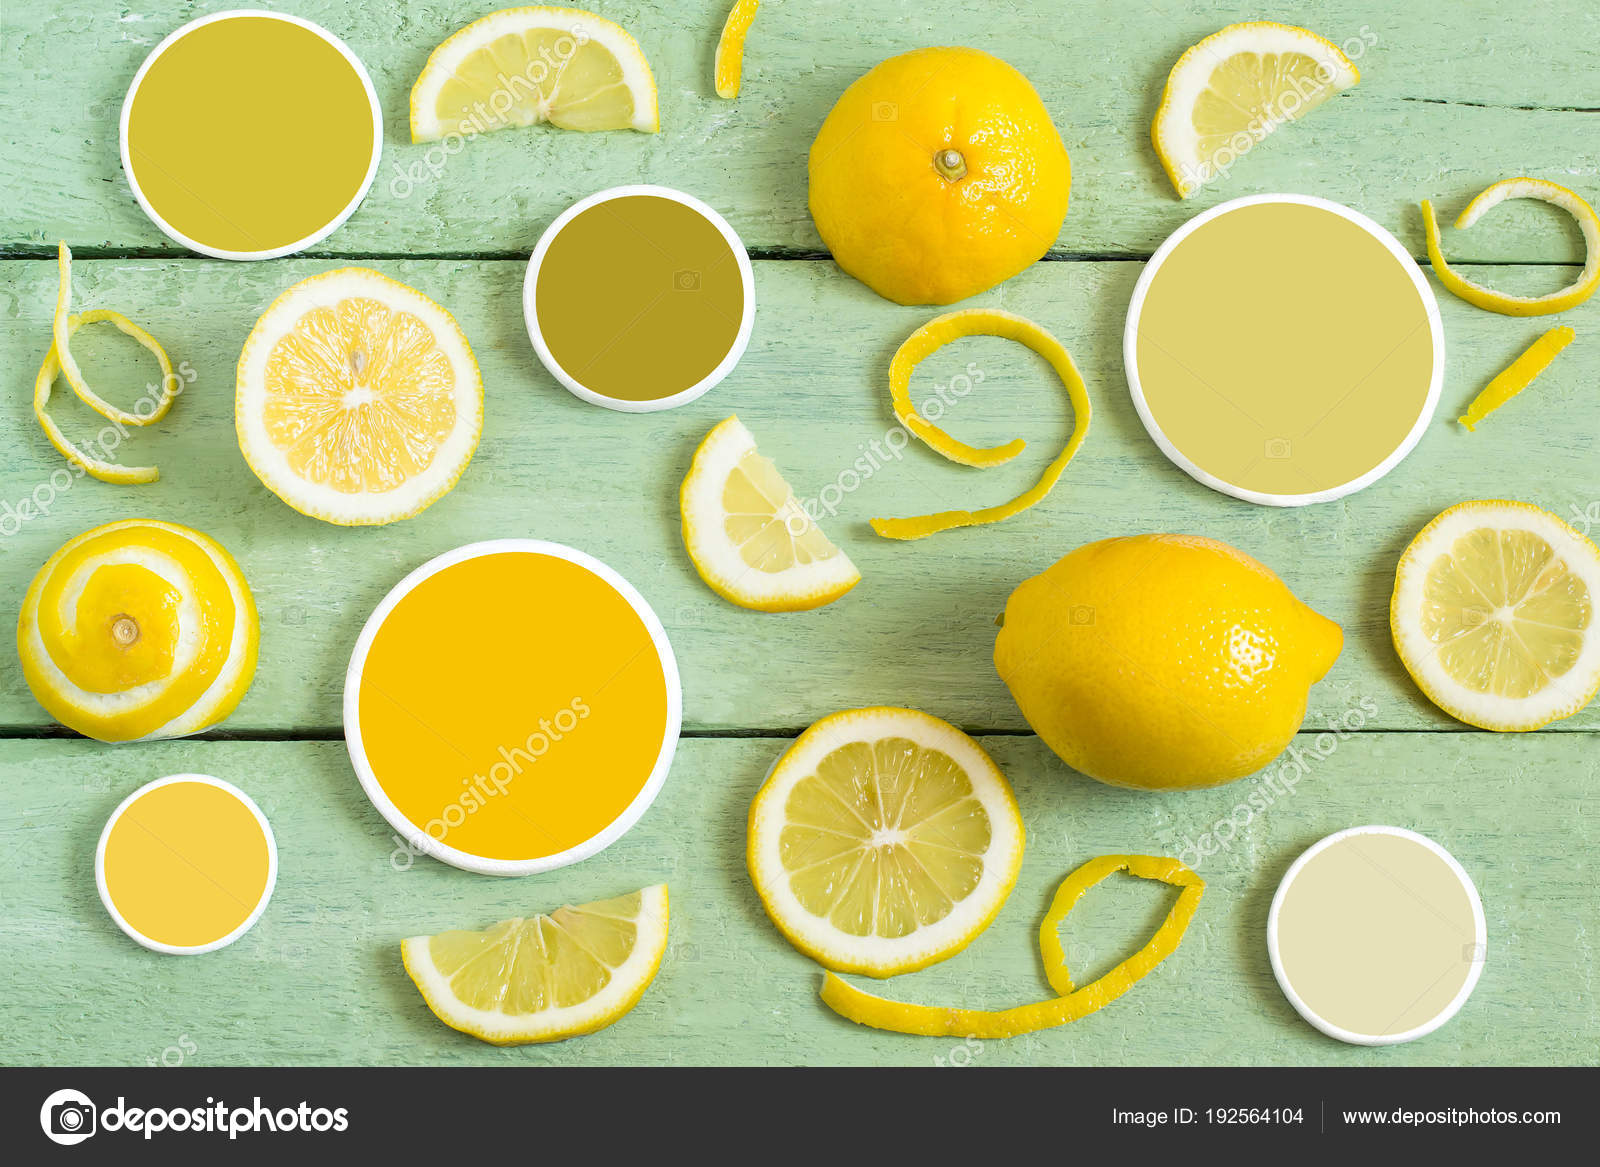 Pictures Of Lemons To Color